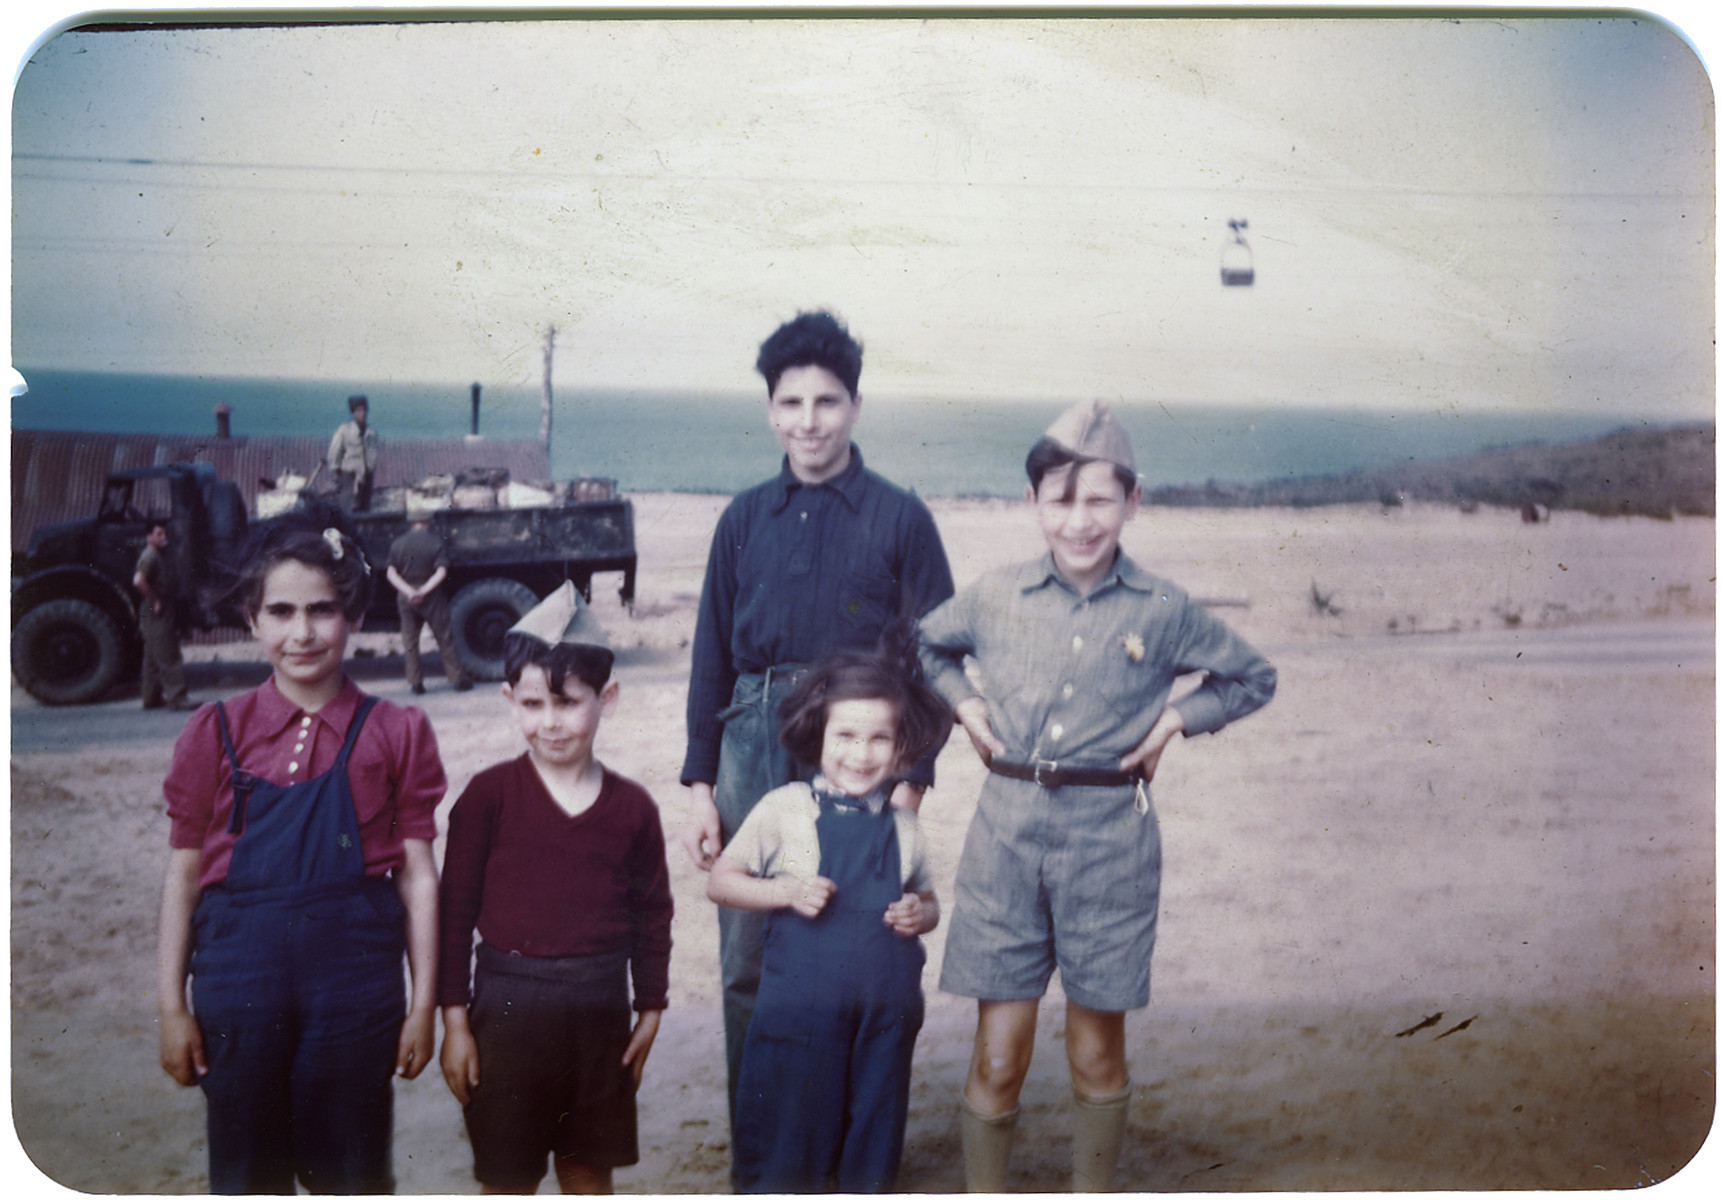 Group portrait of Jewish children in the Jeanne d'Arc camp in Phillippeville who were sent their following their release from Bergen-Belsen in a prisoner exchange.  Hans Abraham is on the far right, and Ruth Abraham is in the front right.